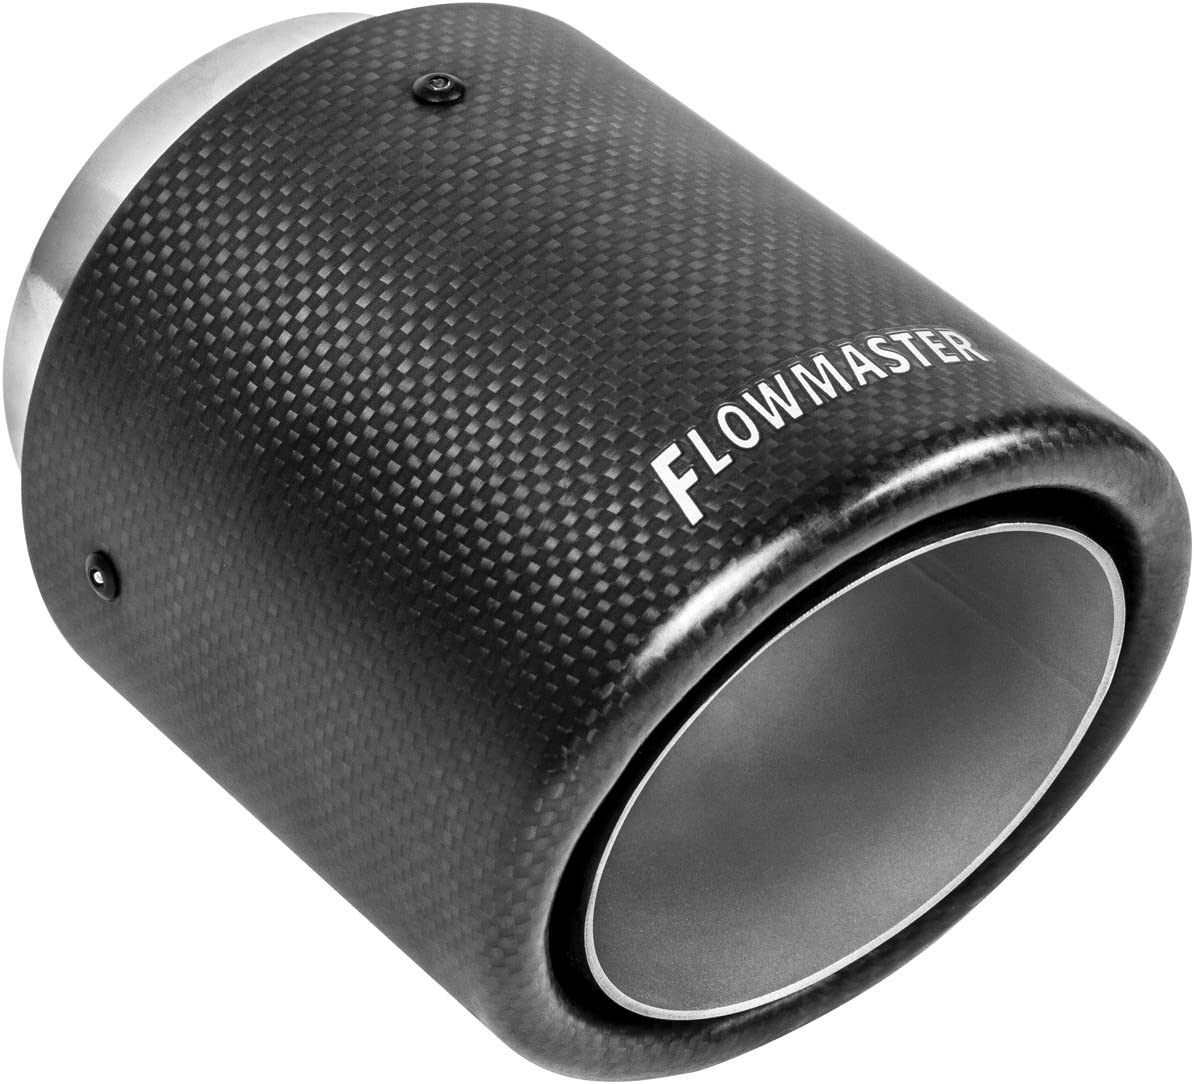 Flowmaster 2029263 Silver Large Exhaust